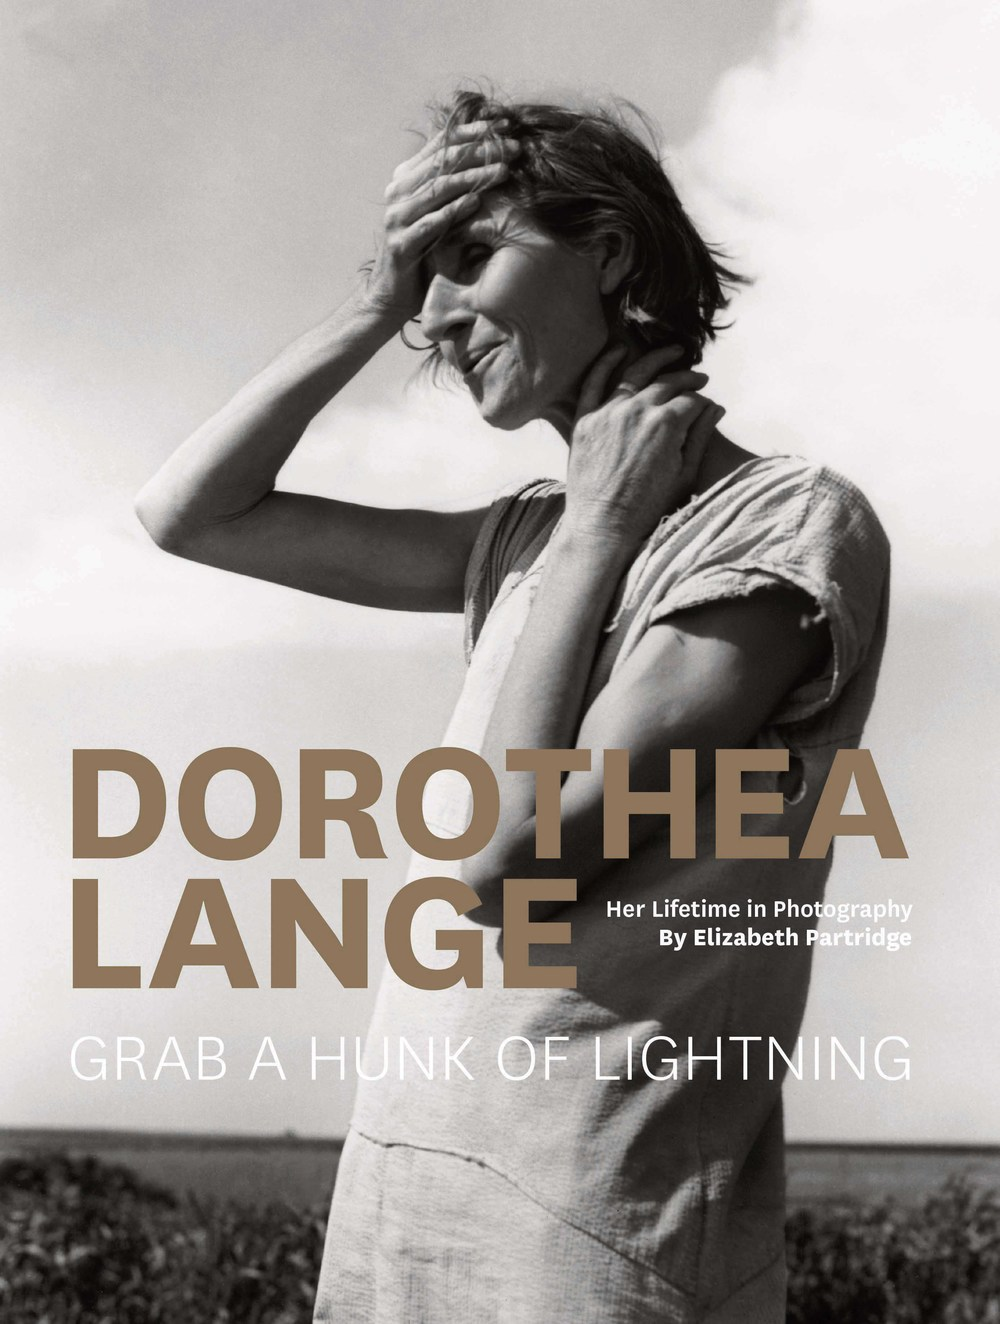 Dorothea Lange: Grab a Hunk of Lightning  - This beautiful volume celebrates one of the twentieth century's most important photographers, Dorothea Lange. Led off by an authoritative biographical essay by Elizabeth Partridge (Lange's goddaughter), the book goes on to showcase Lange's work in over a hundred glorious plates.Dorothea Lange features images ranging from her iconic Depression-era photograph